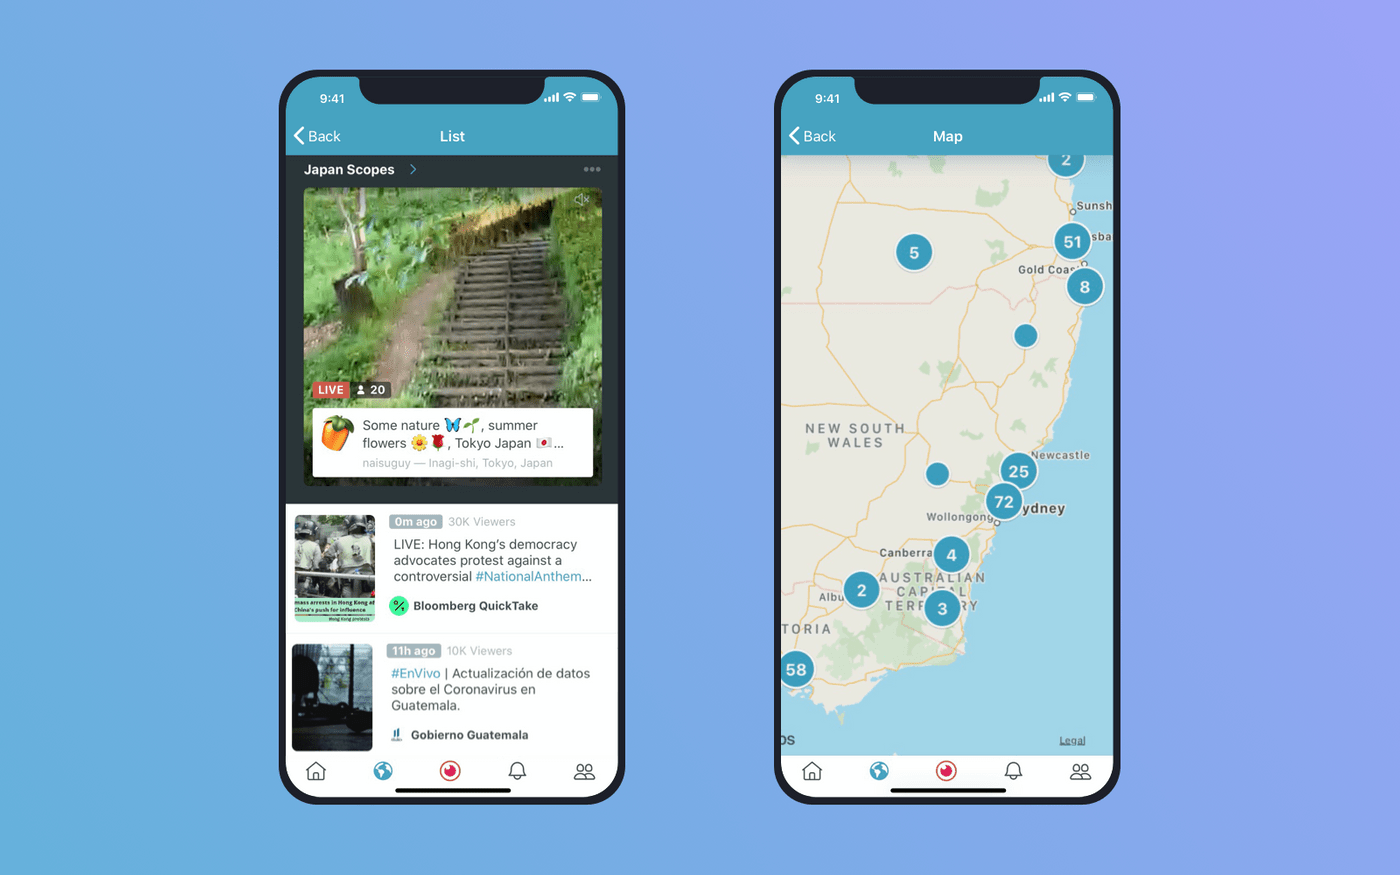 Periscope feed screens using geolocation